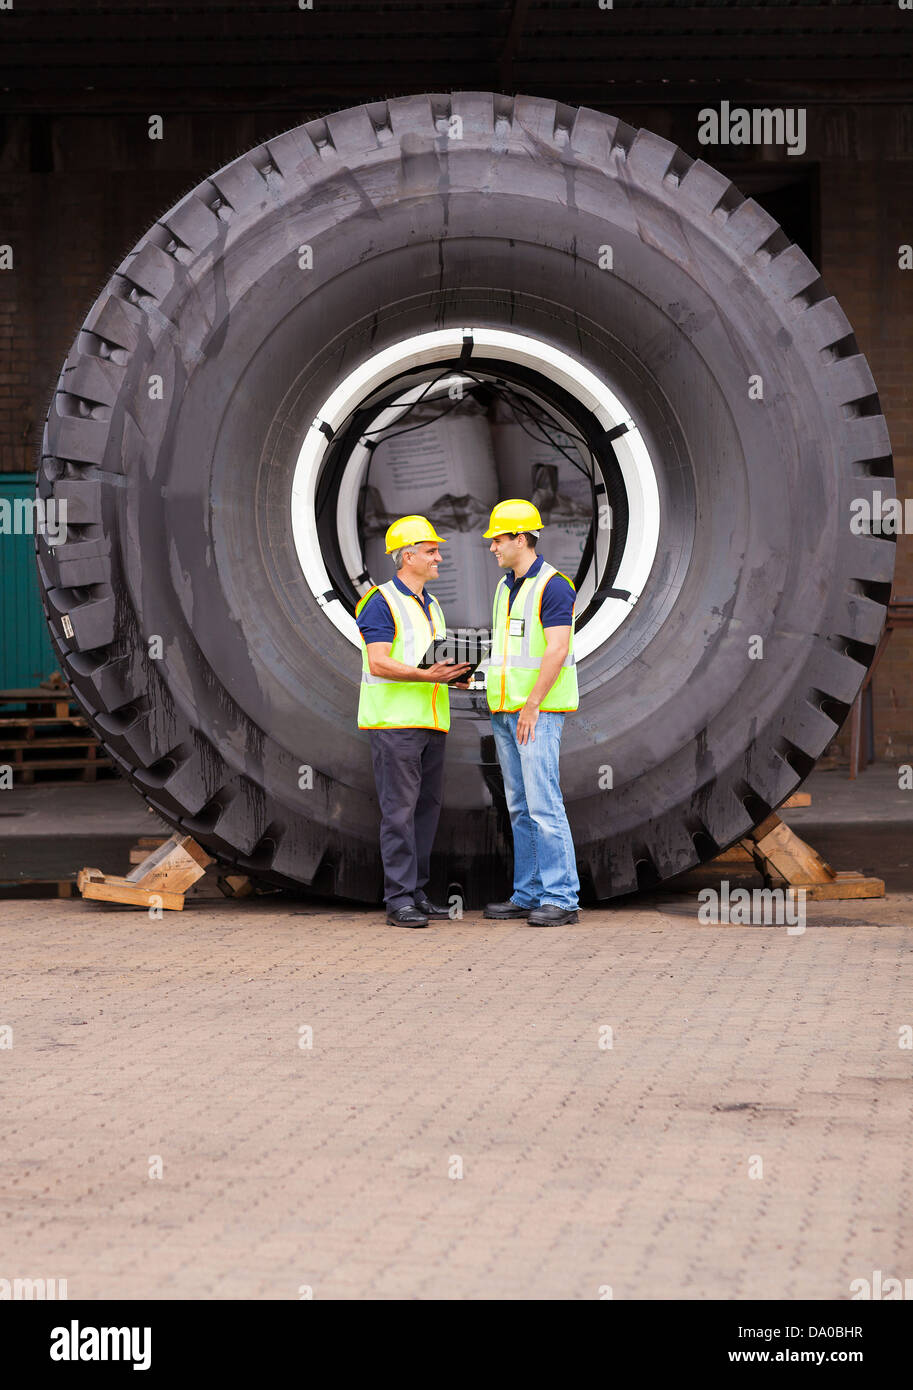 cheerful warehouse workers standing in front of huge tire - Stock Image